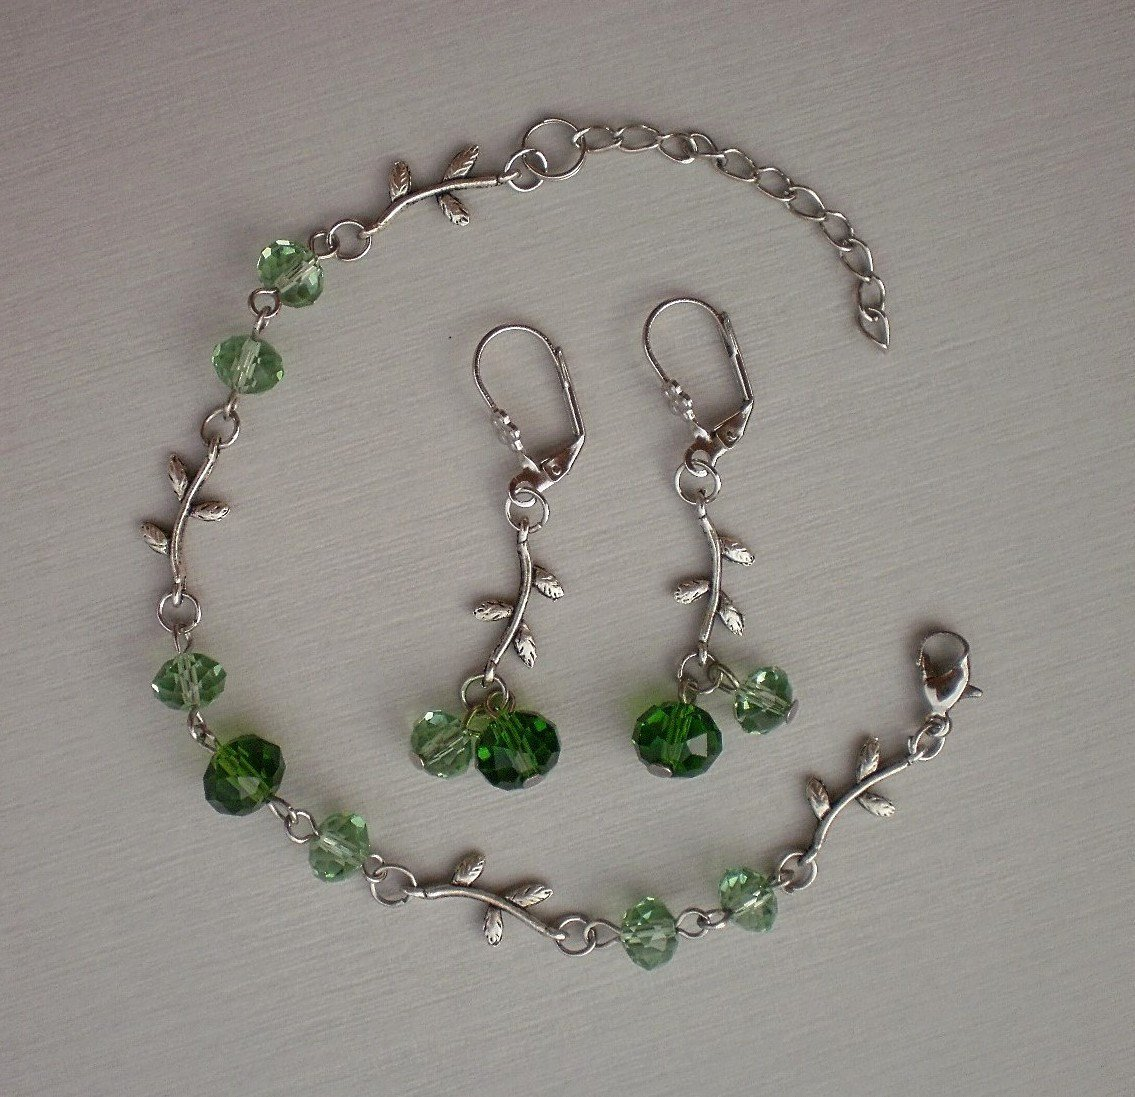 Peridot Green Crystal Beaded Bracelet & Earrings Handmade Designer Jewelry Fall Fashion Flower Leaft